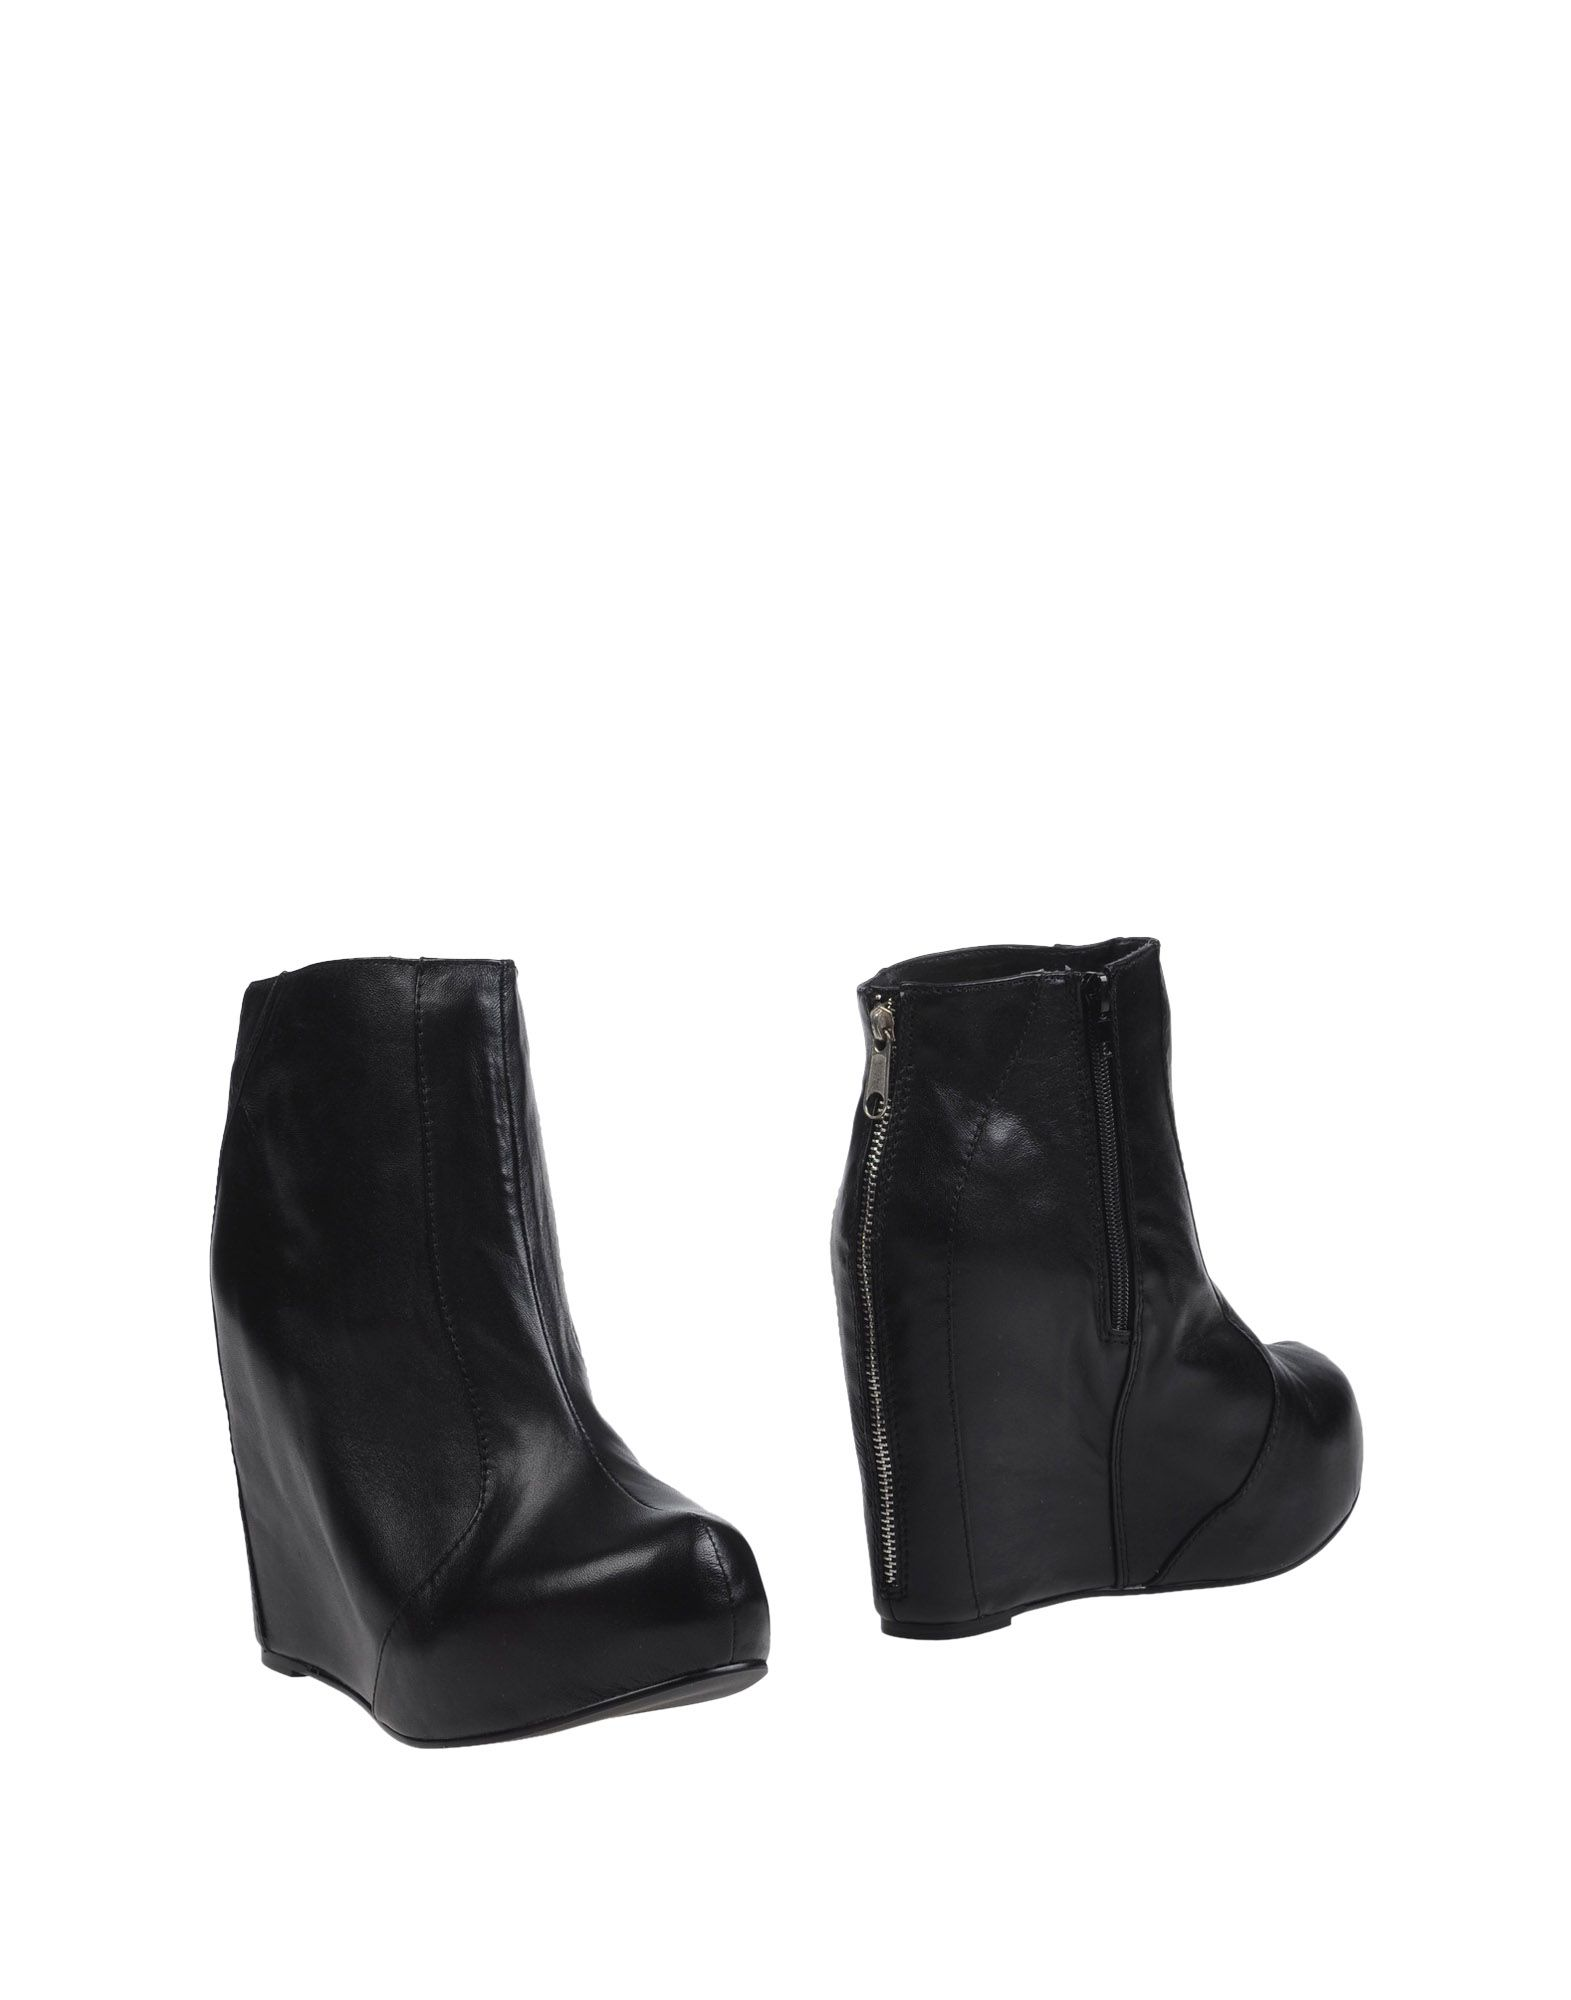 Jeffrey Campbell Ankle Campbell Boot - Women Jeffrey Campbell Ankle Ankle Boots online on  Australia - 11186632XP 2a9f95